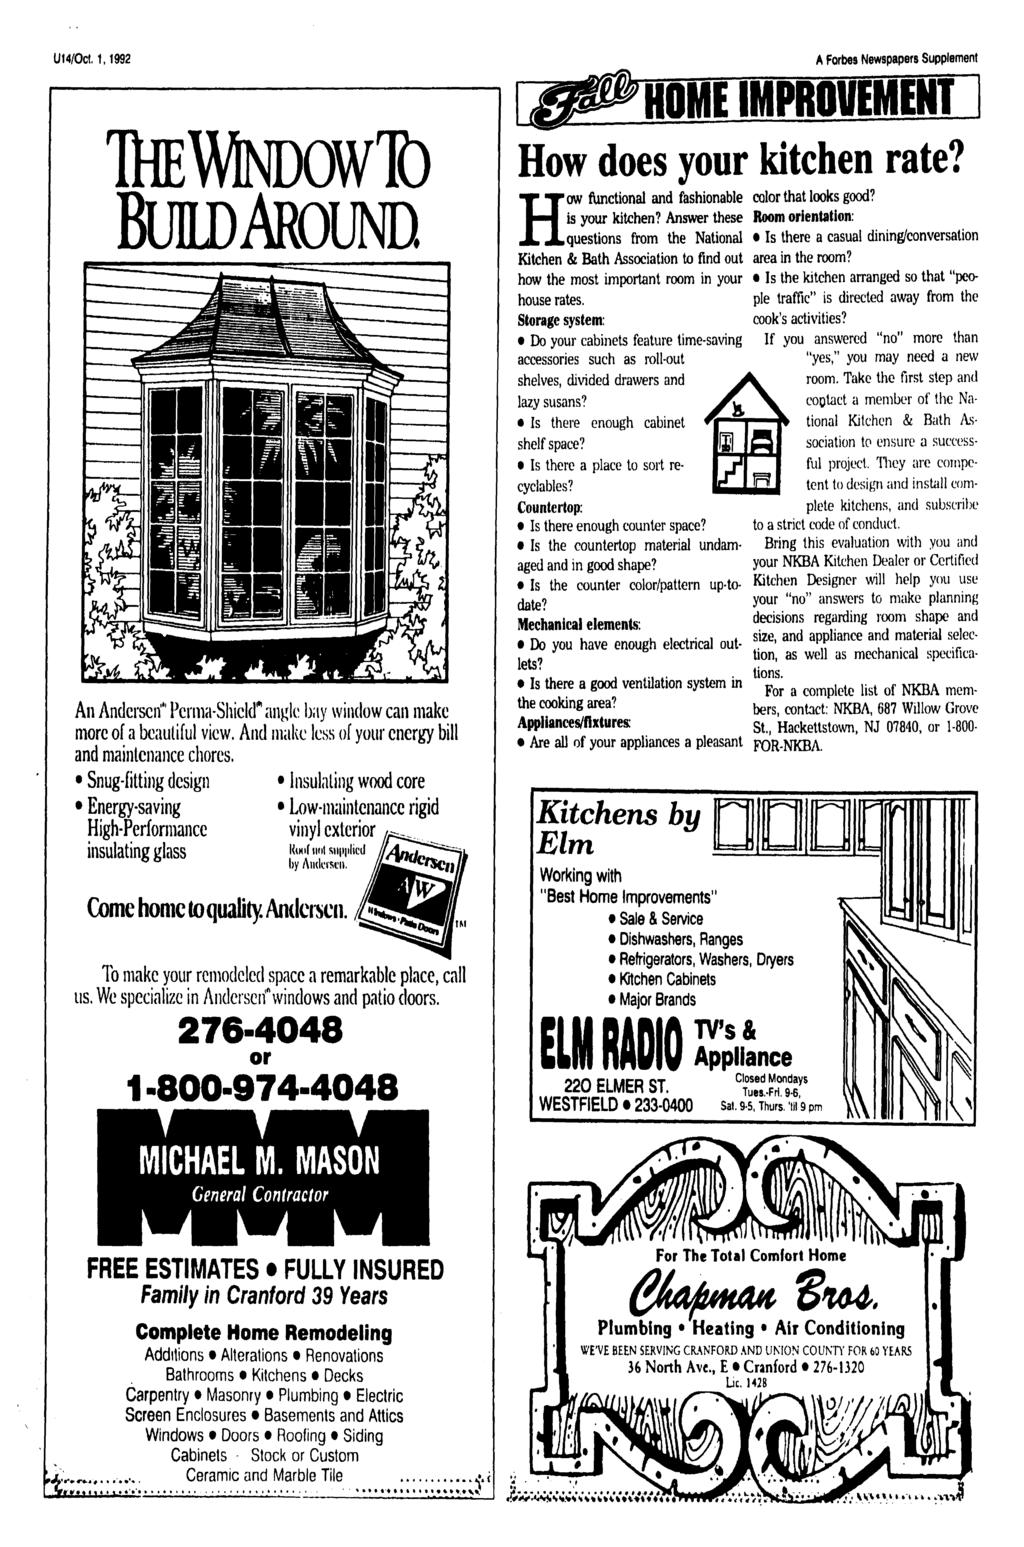 "U14/0ct.1,1992 A Forbes Newspapers Supplement HOME MPROVEMENT ThEWlNDOWT) BUDAROUND An Andersen"" 1 Pcrma-Shidd* angle bay window can make more of a beautiful view."